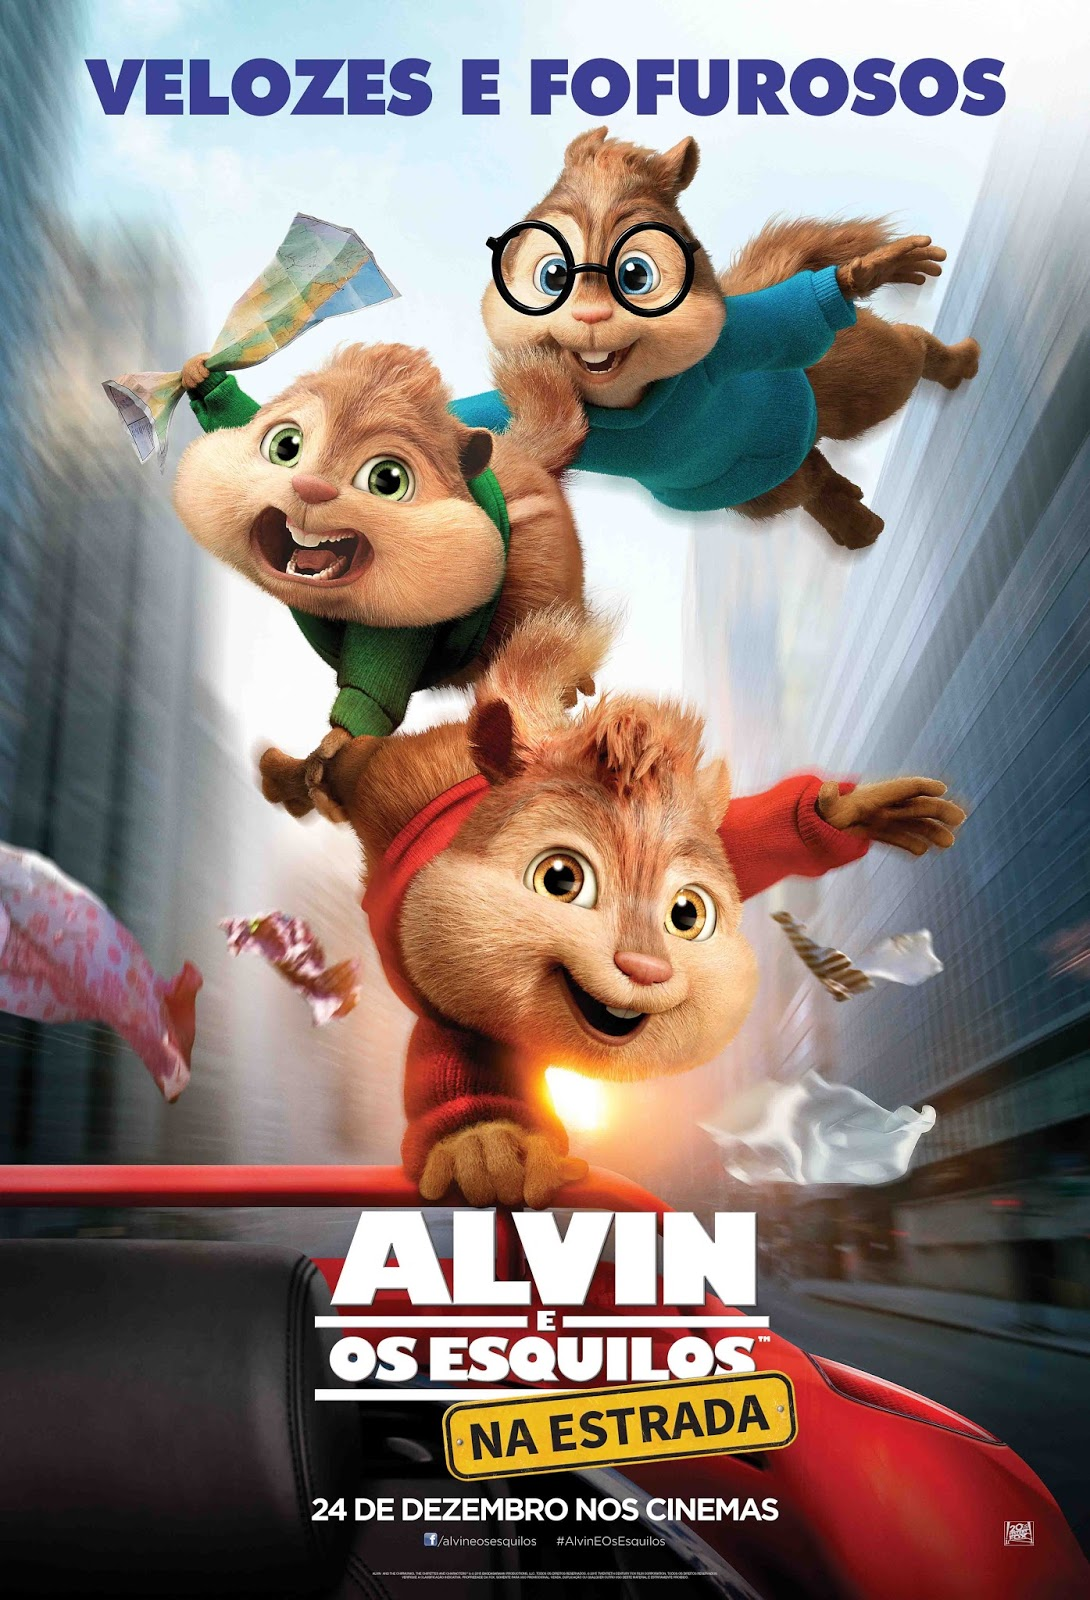 Alvin e os Esquilos: Na Estrada Torrent - BluRay 720p/1080p Dual Áudio